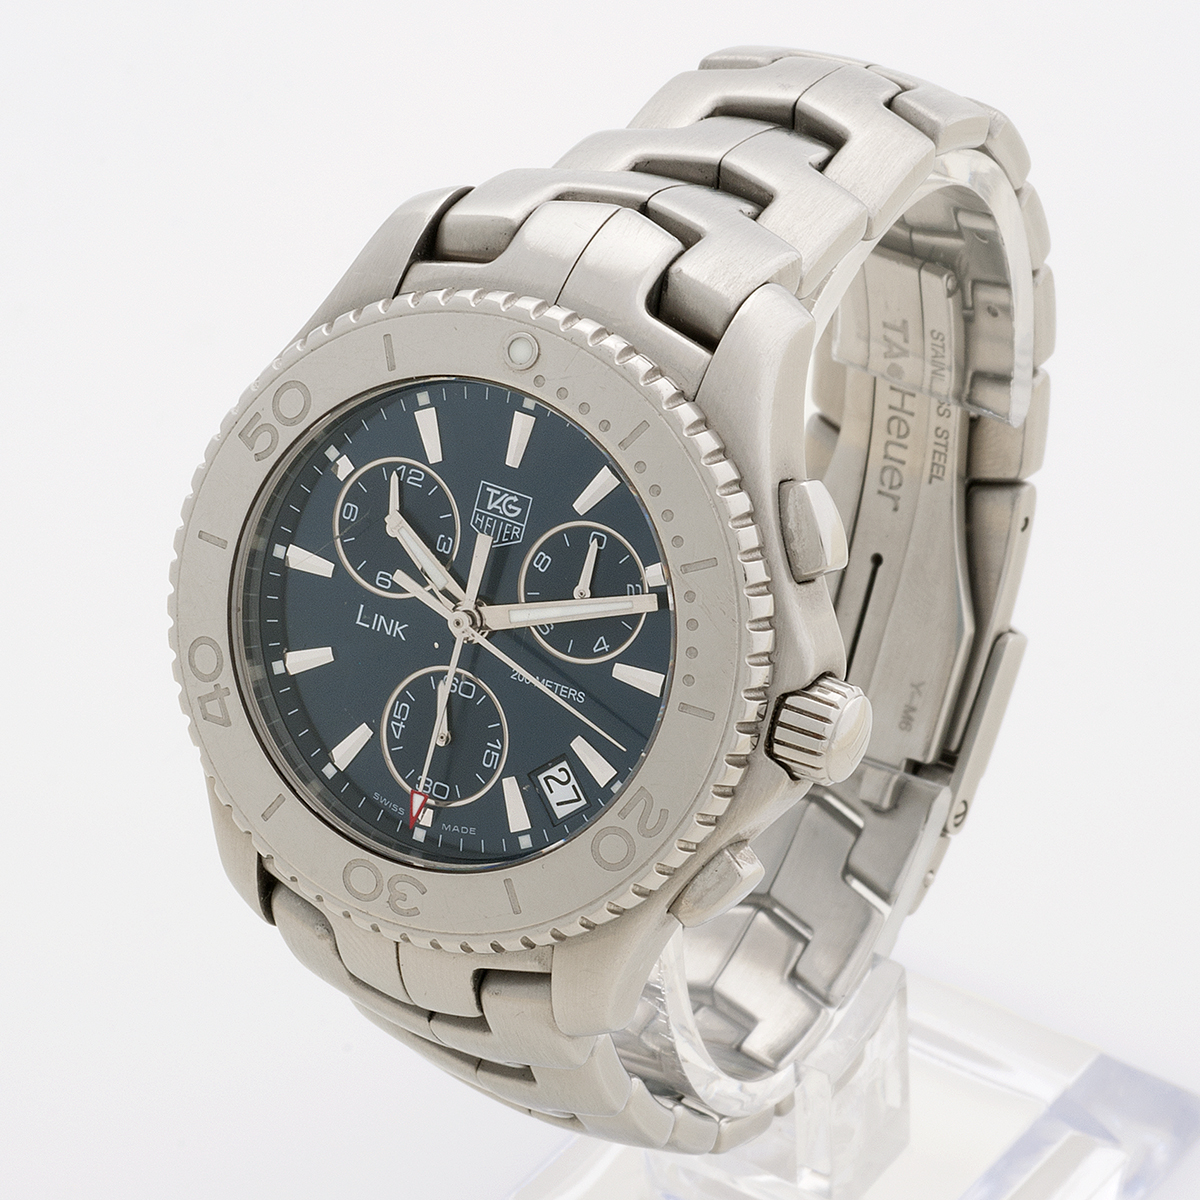 Tag heuer link chronograph cj1112 vintage and prestige for Tag heuer d link